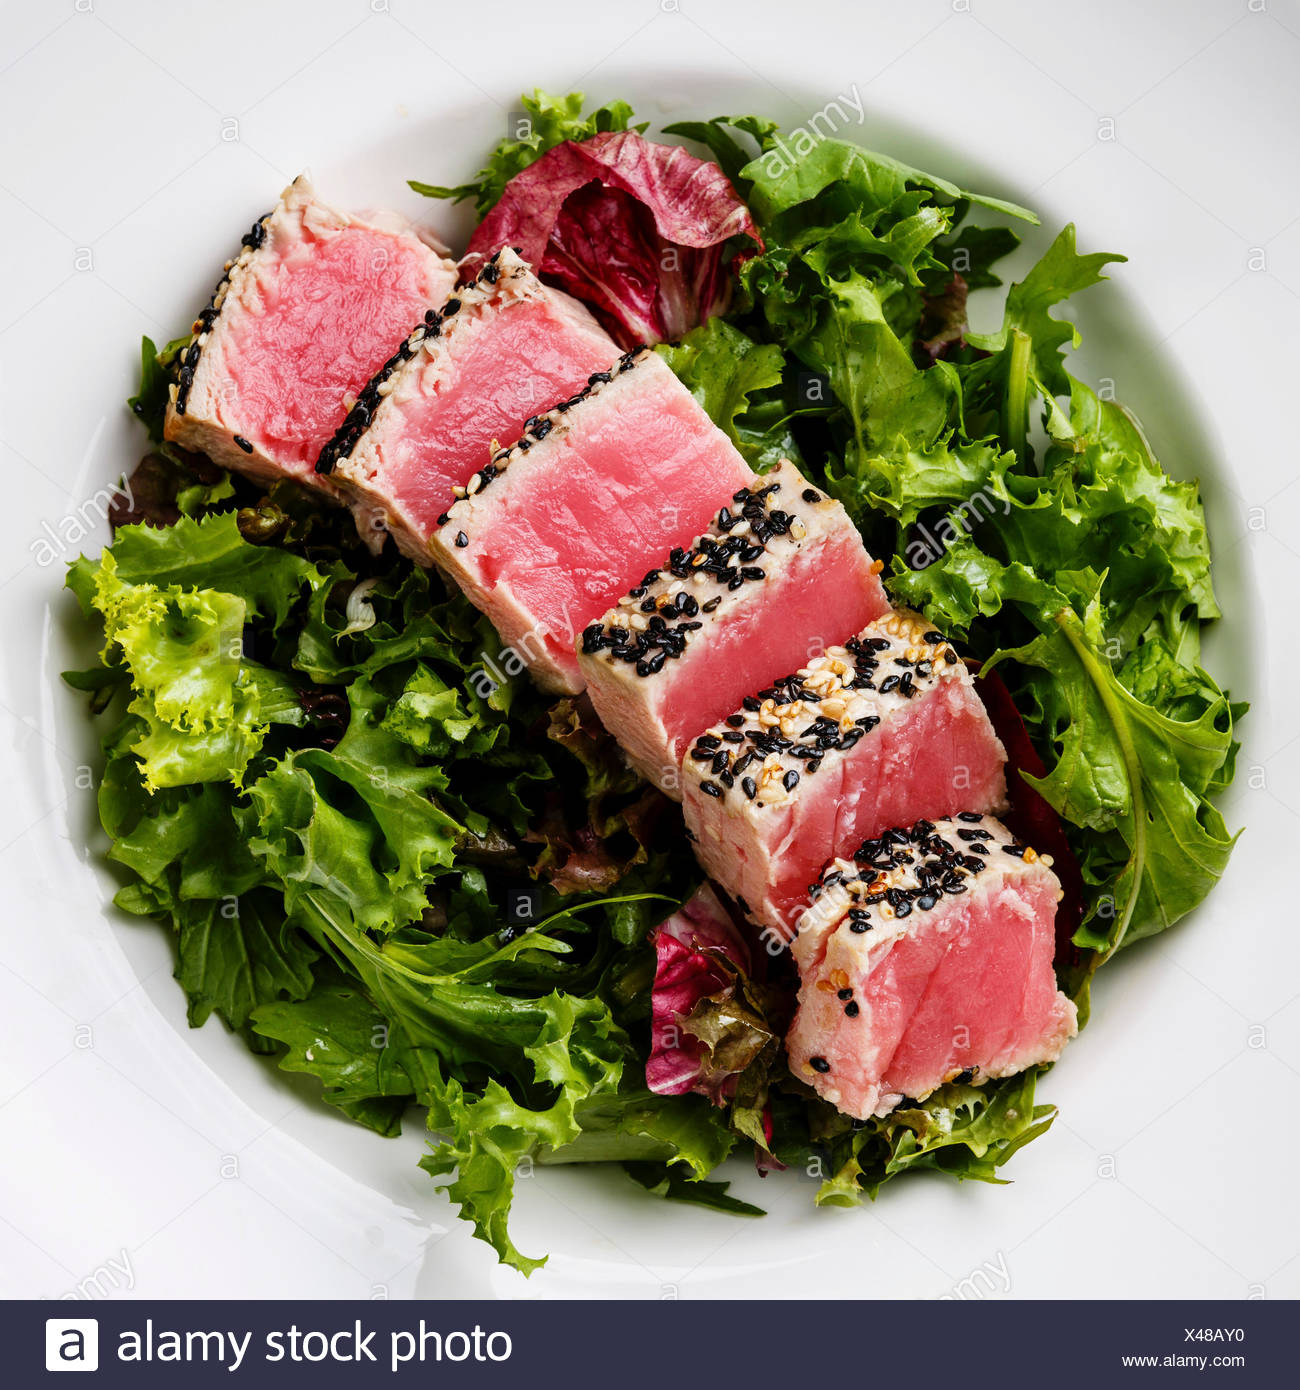 Sliced grilled Tuna steak in sesame on Green salad close up - Stock Image